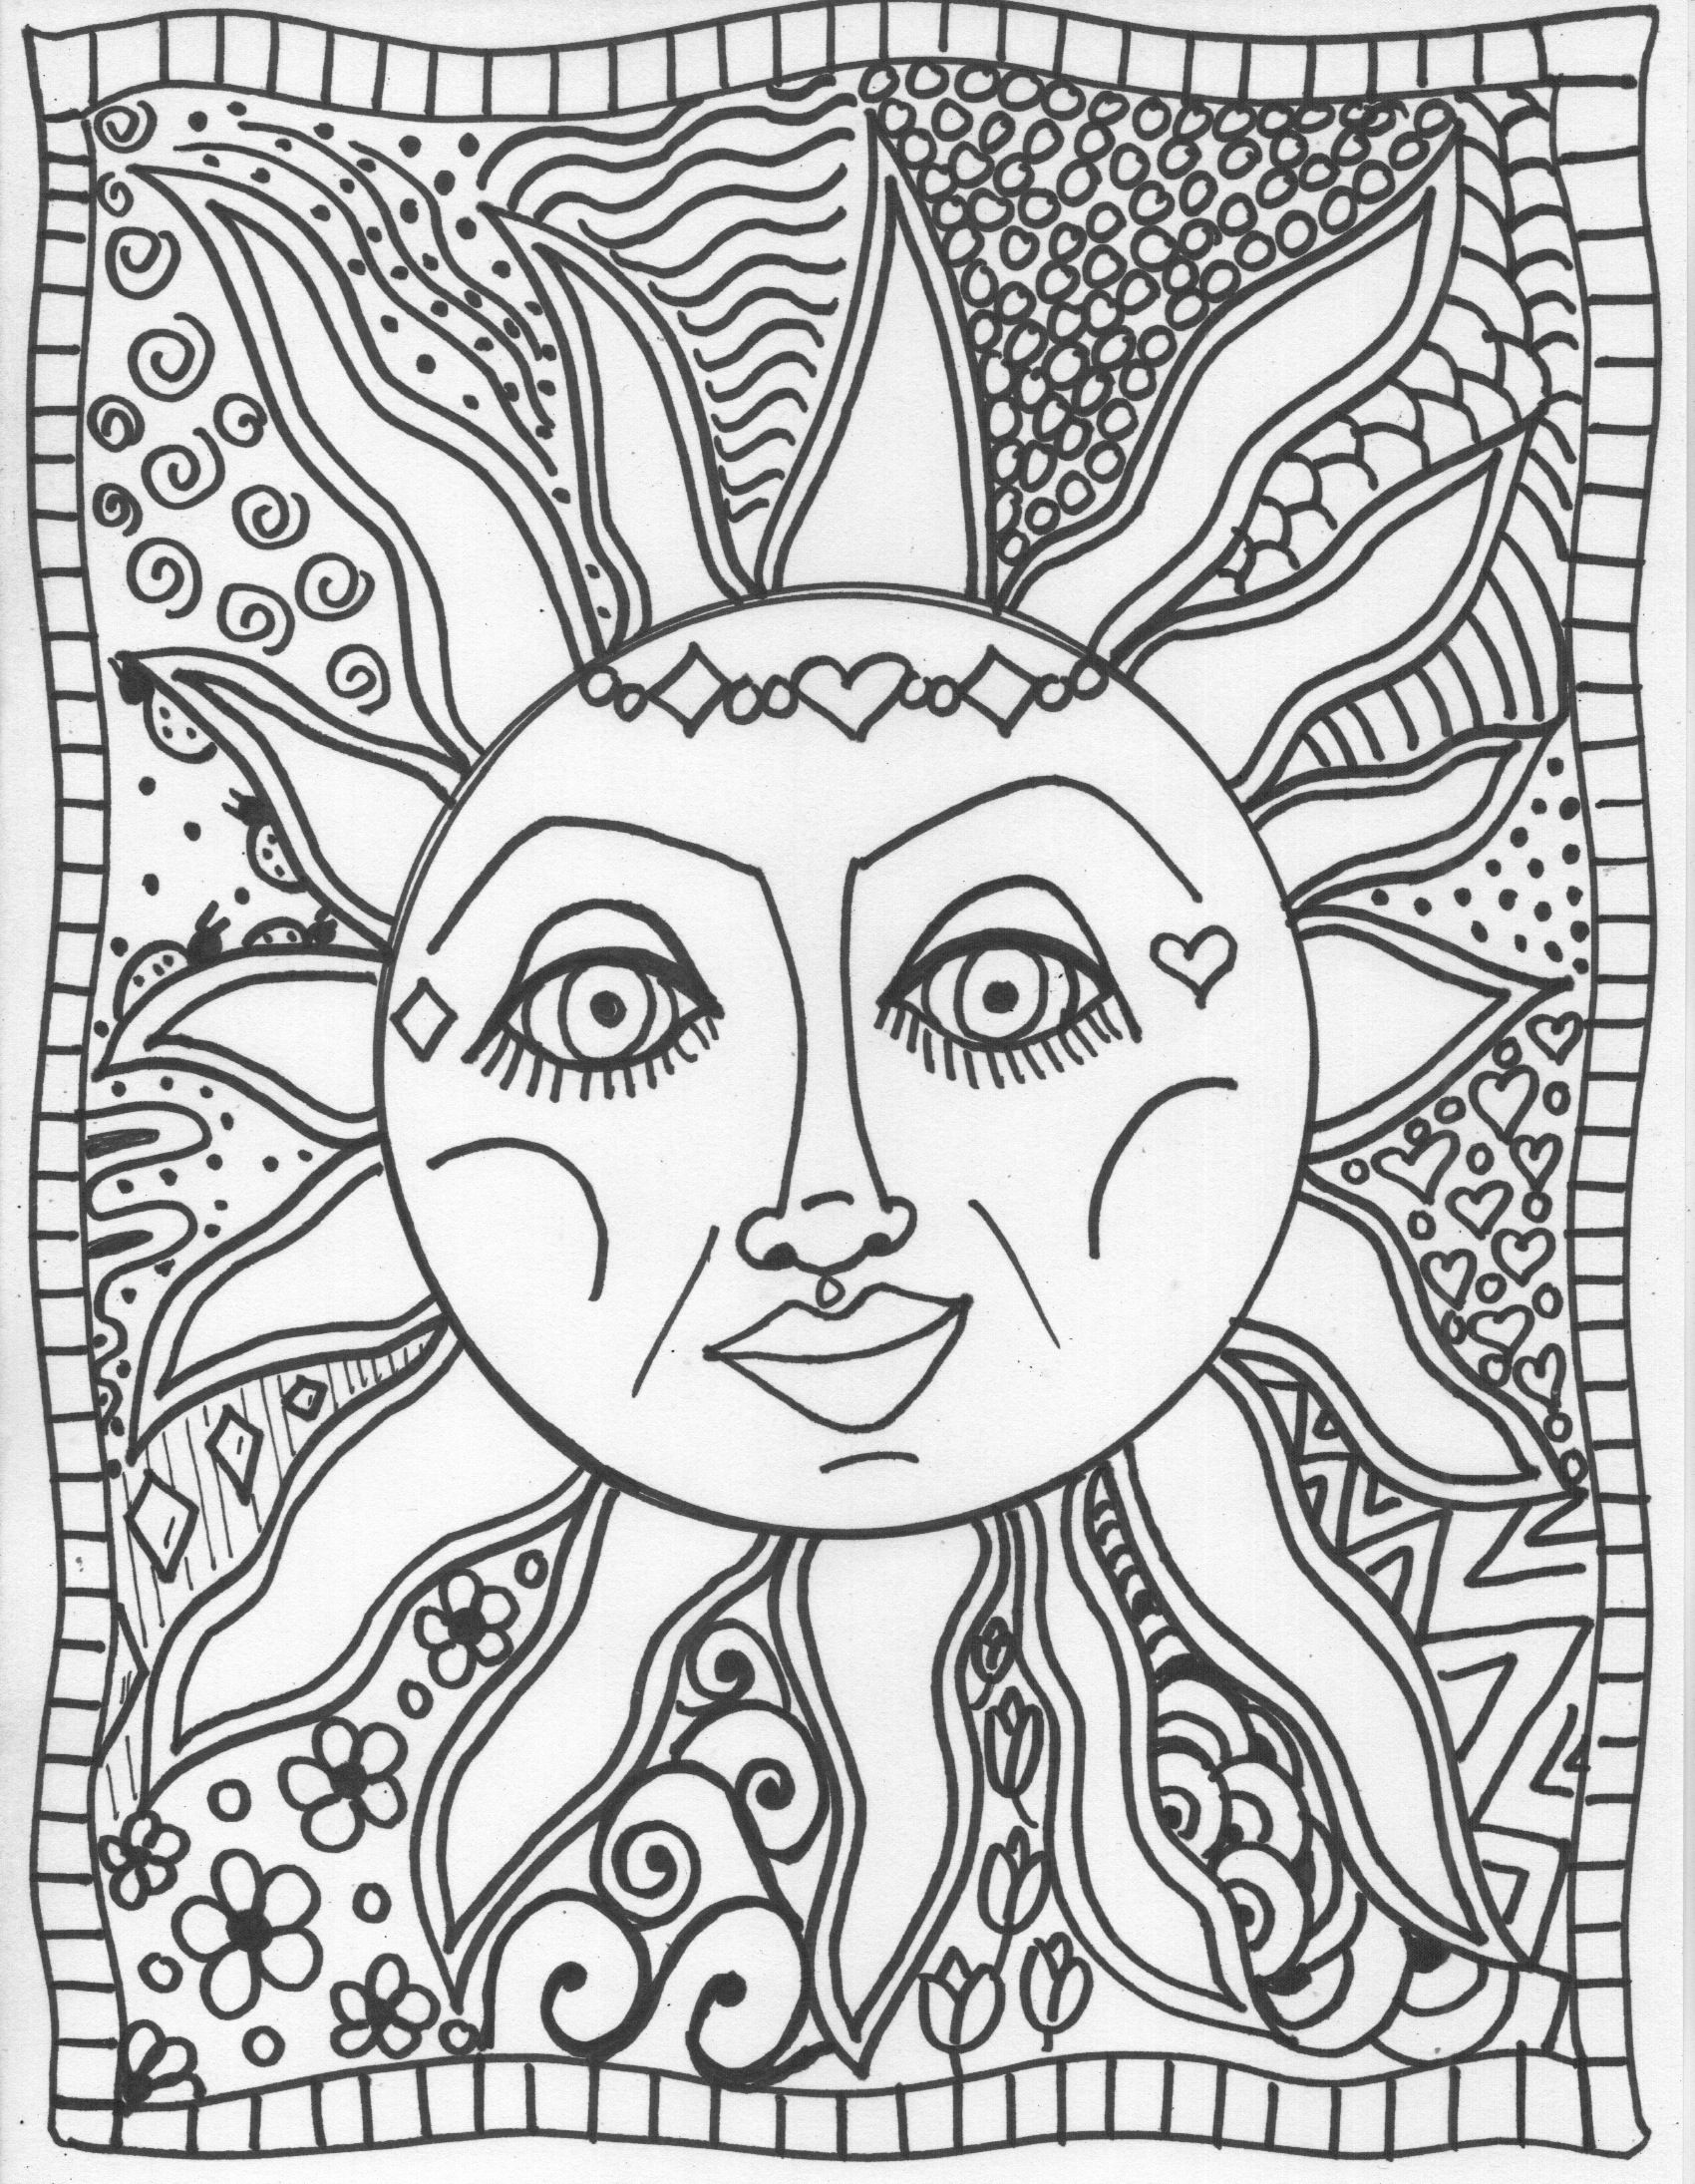 trippy mushroom coloring pages - photo#19